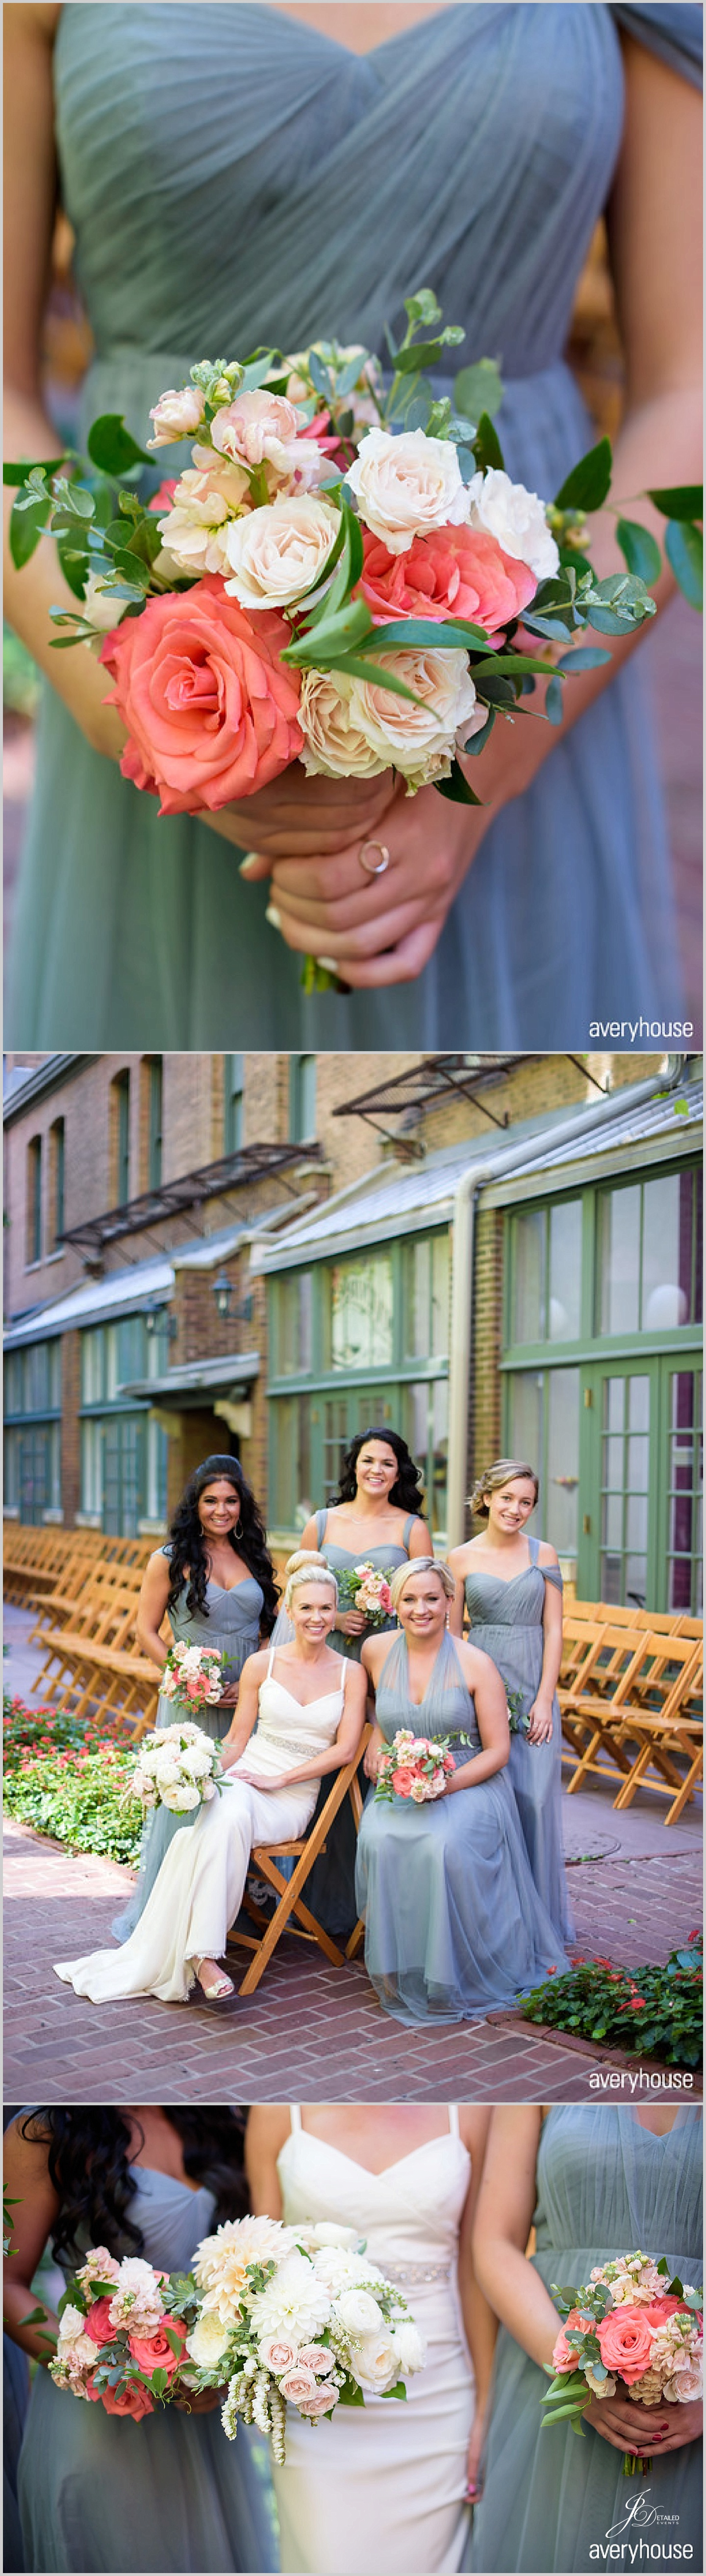 avery-house-wedding-chicago_2211